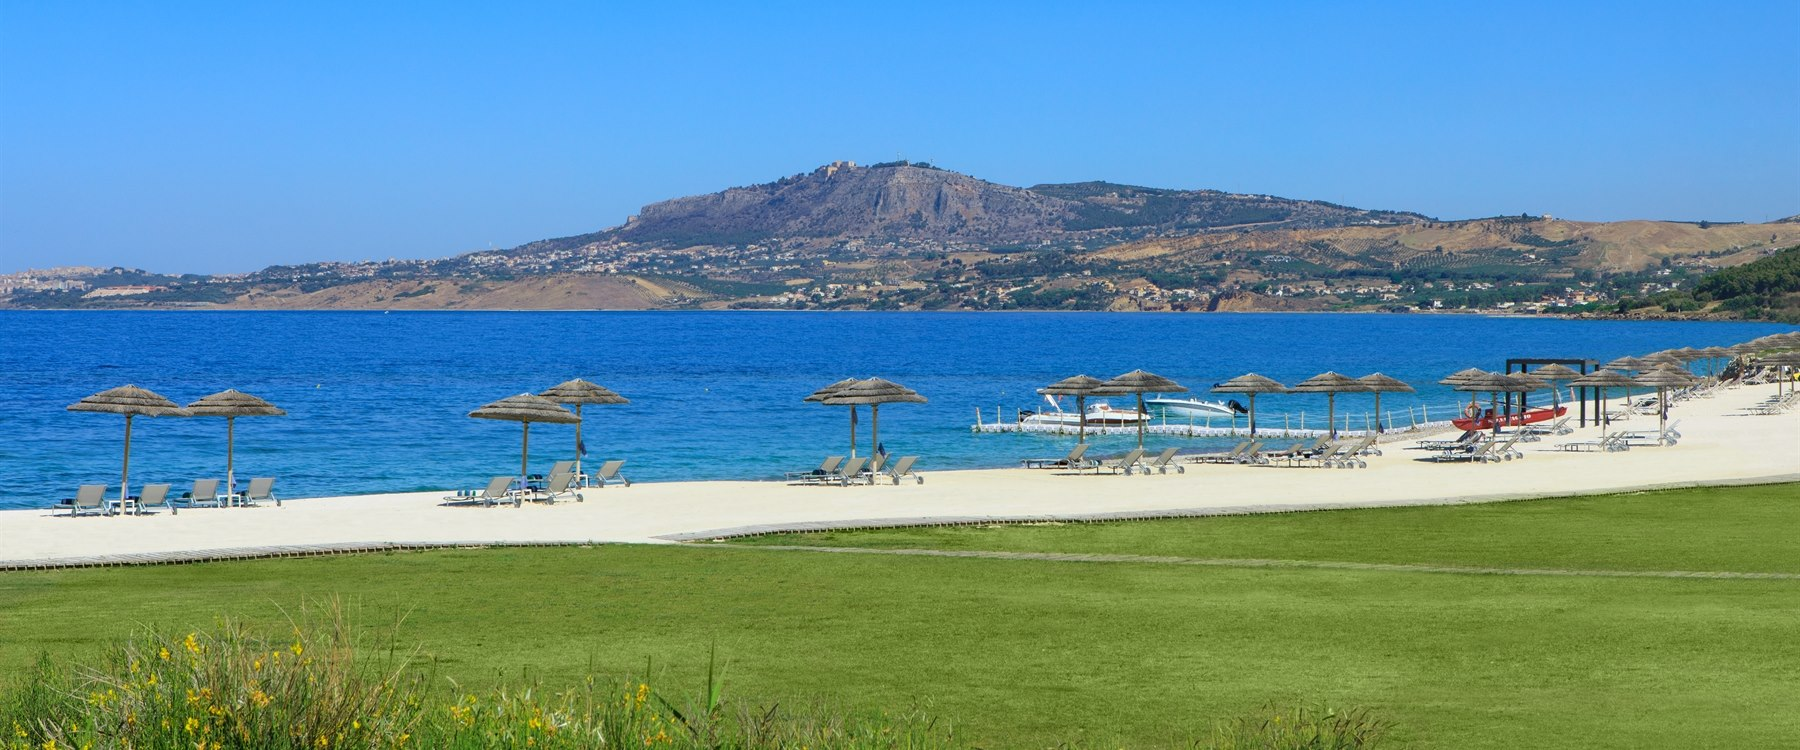 The beach at Verdura Resort, Sicily